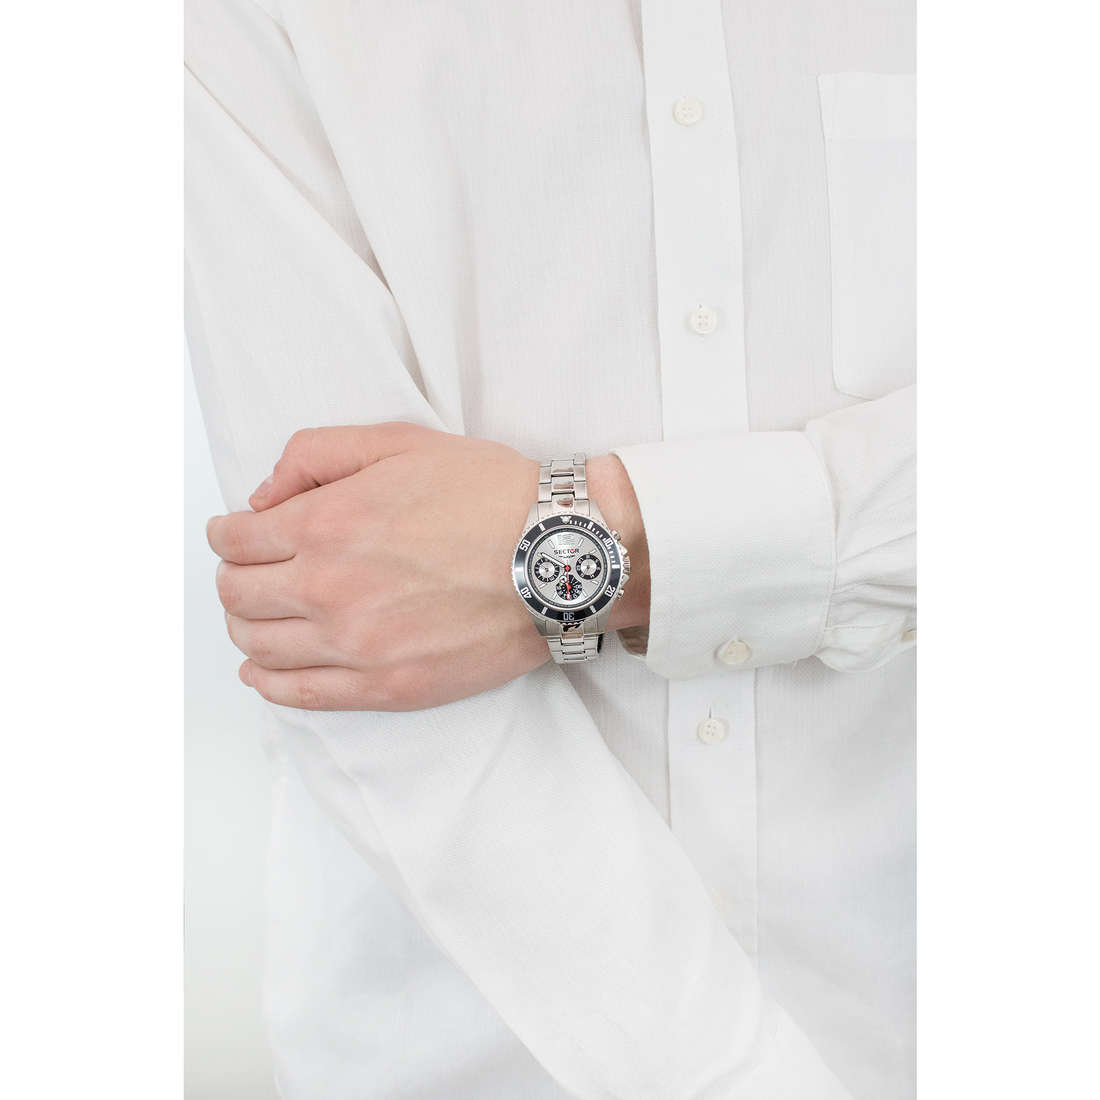 Sector chronographes 230 homme R3253161012 photo wearing